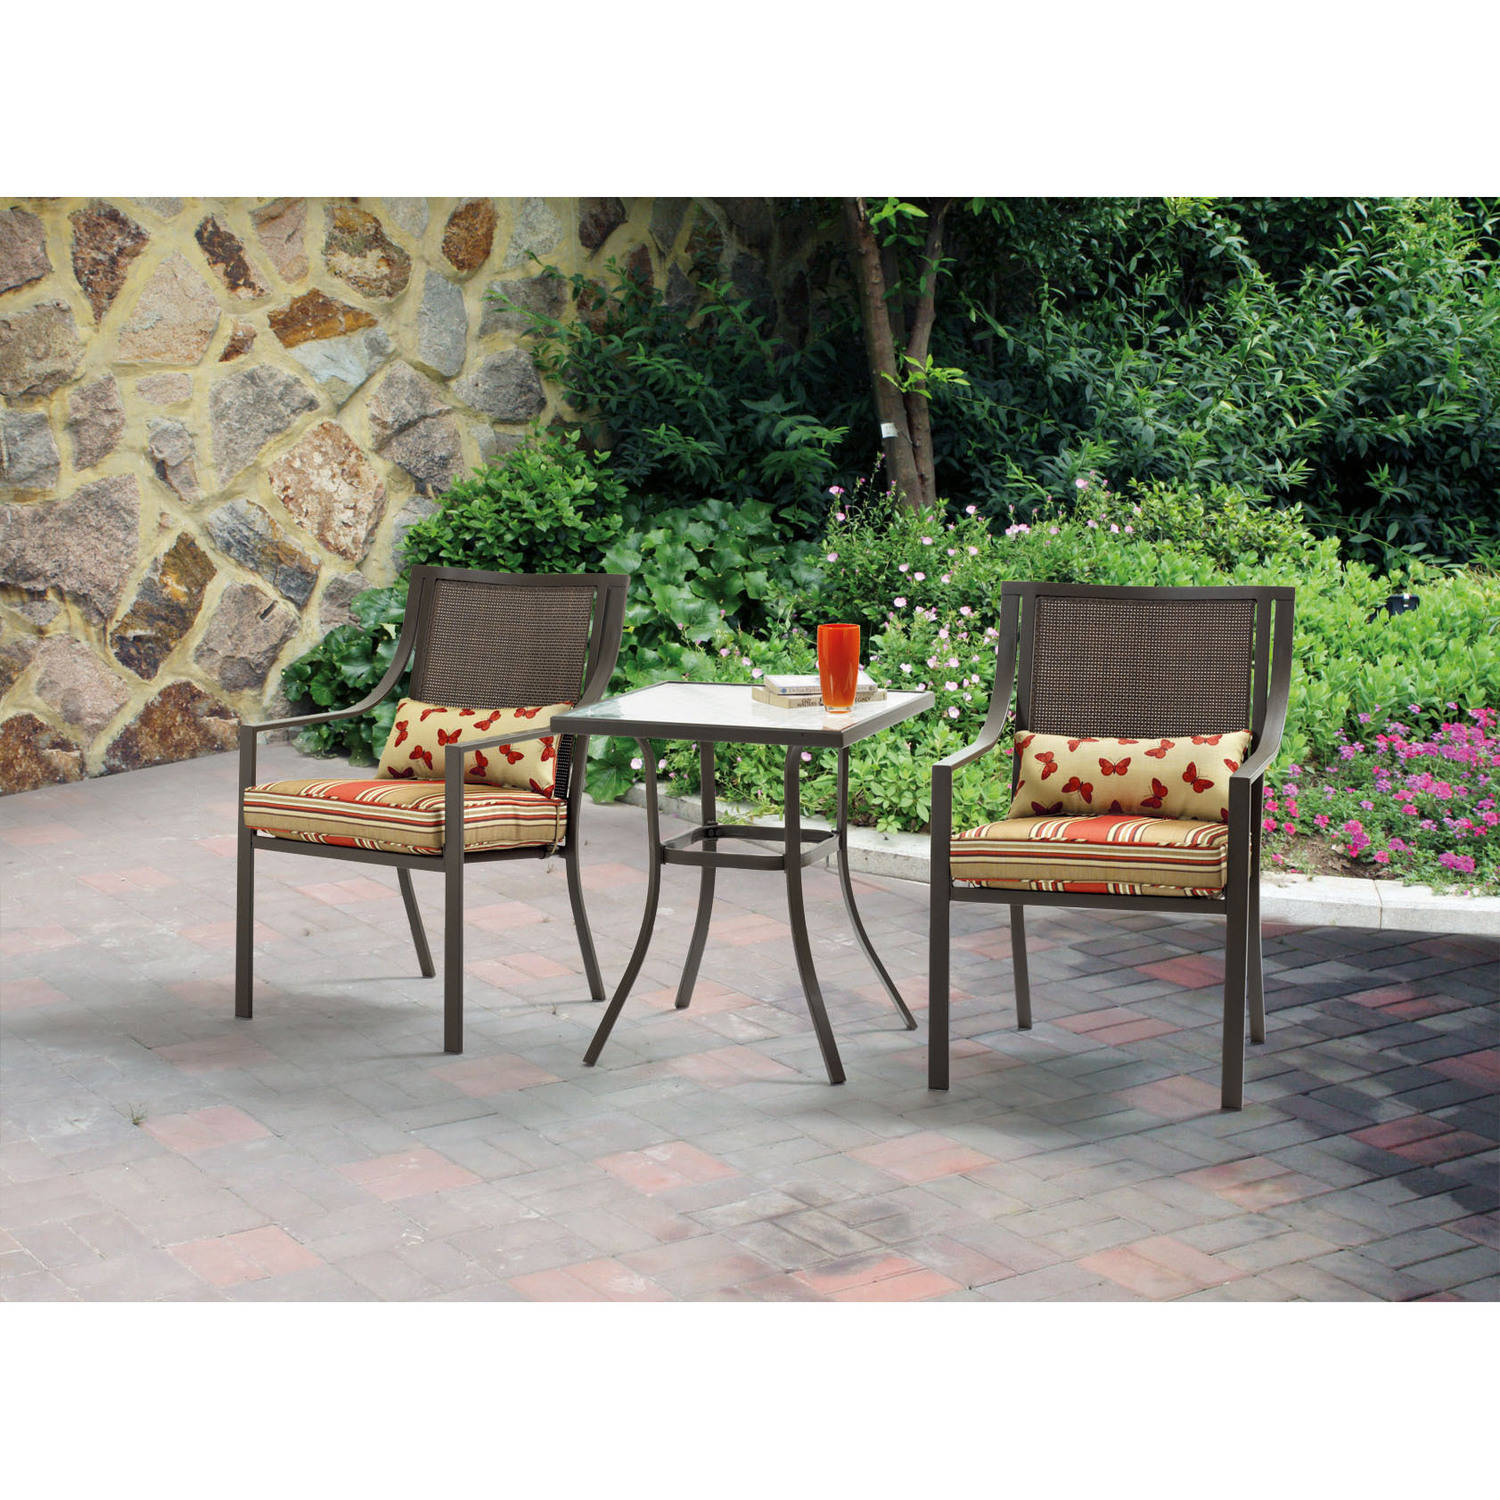 Mainstays Alexandra Square 3 Piece Outdoor Bistro Set Seats 2